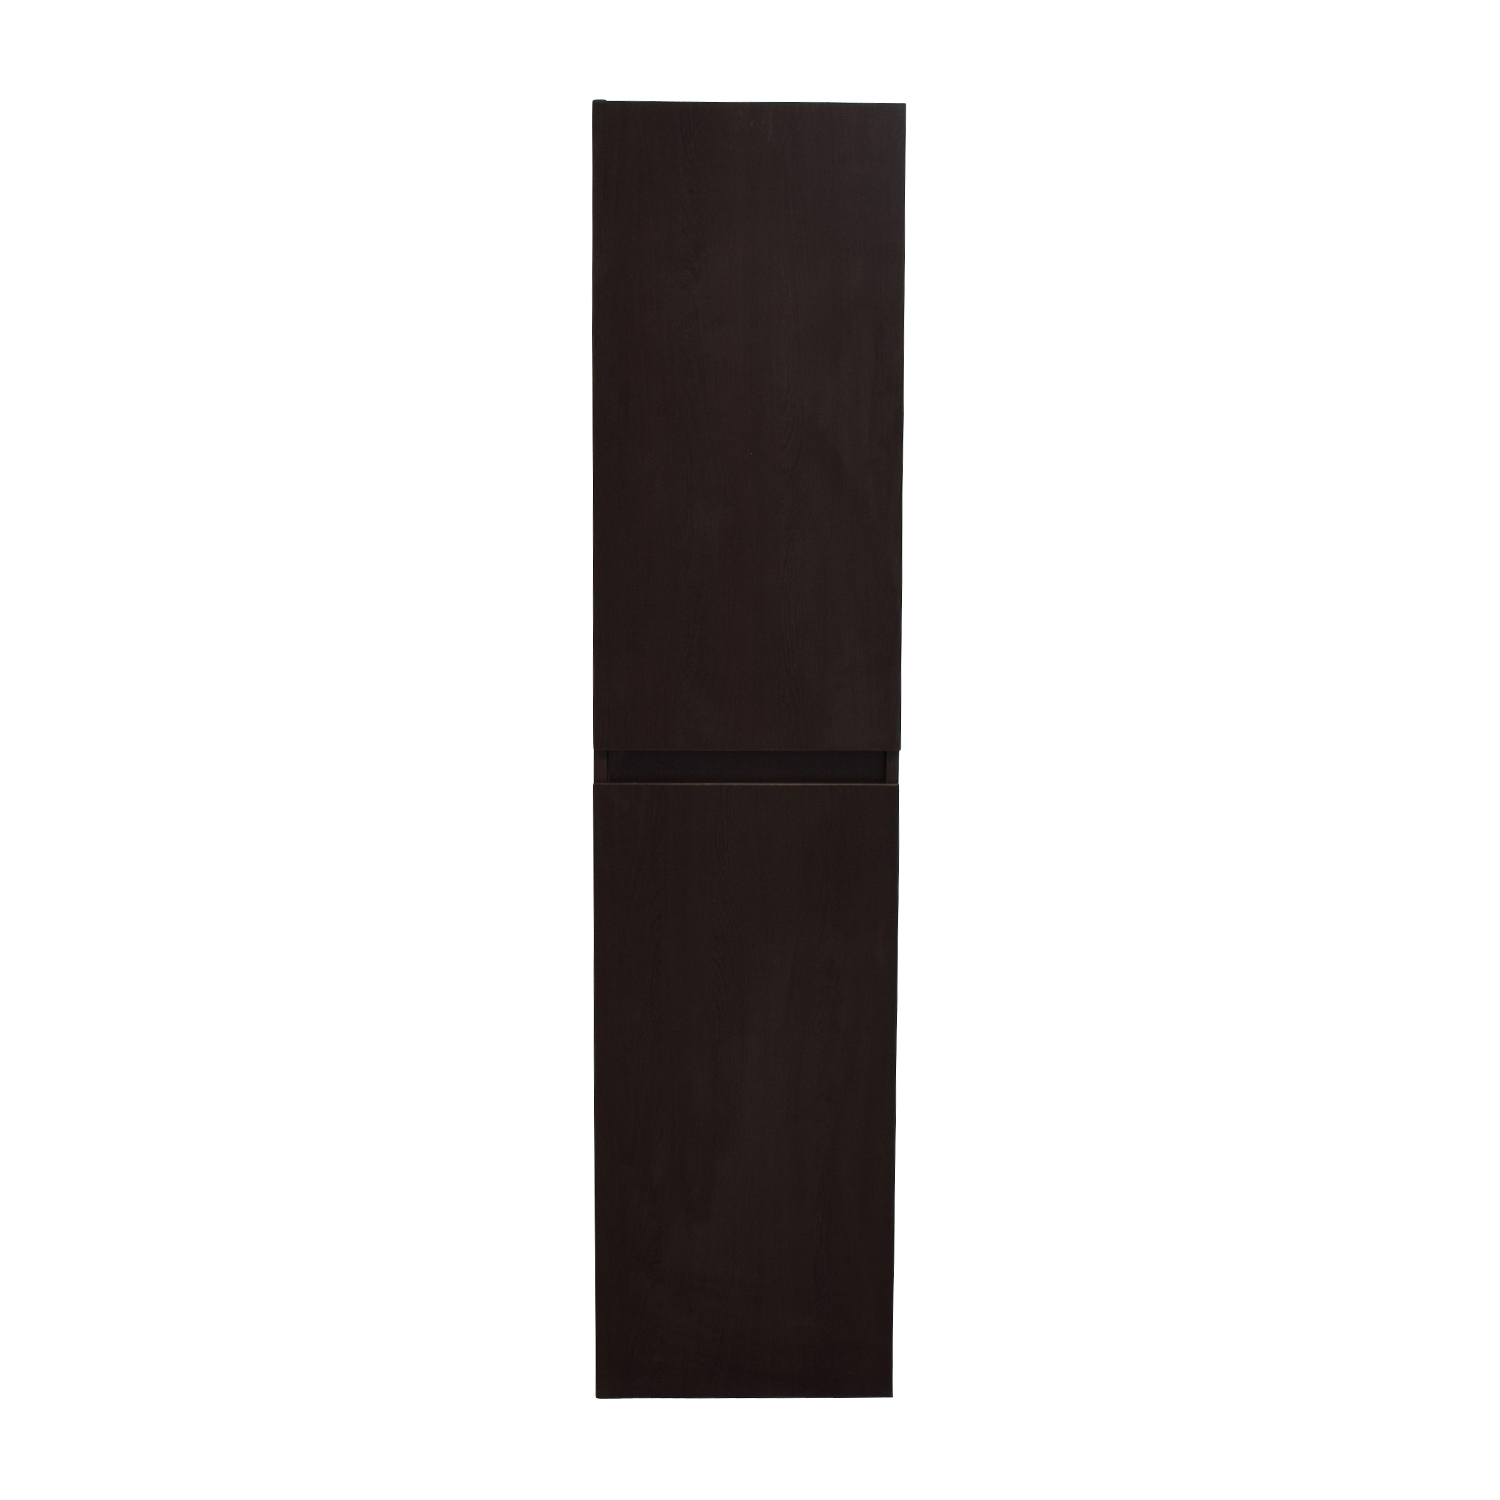 Wendge Tall Brown Storage Bathroom Cabinet dark brown